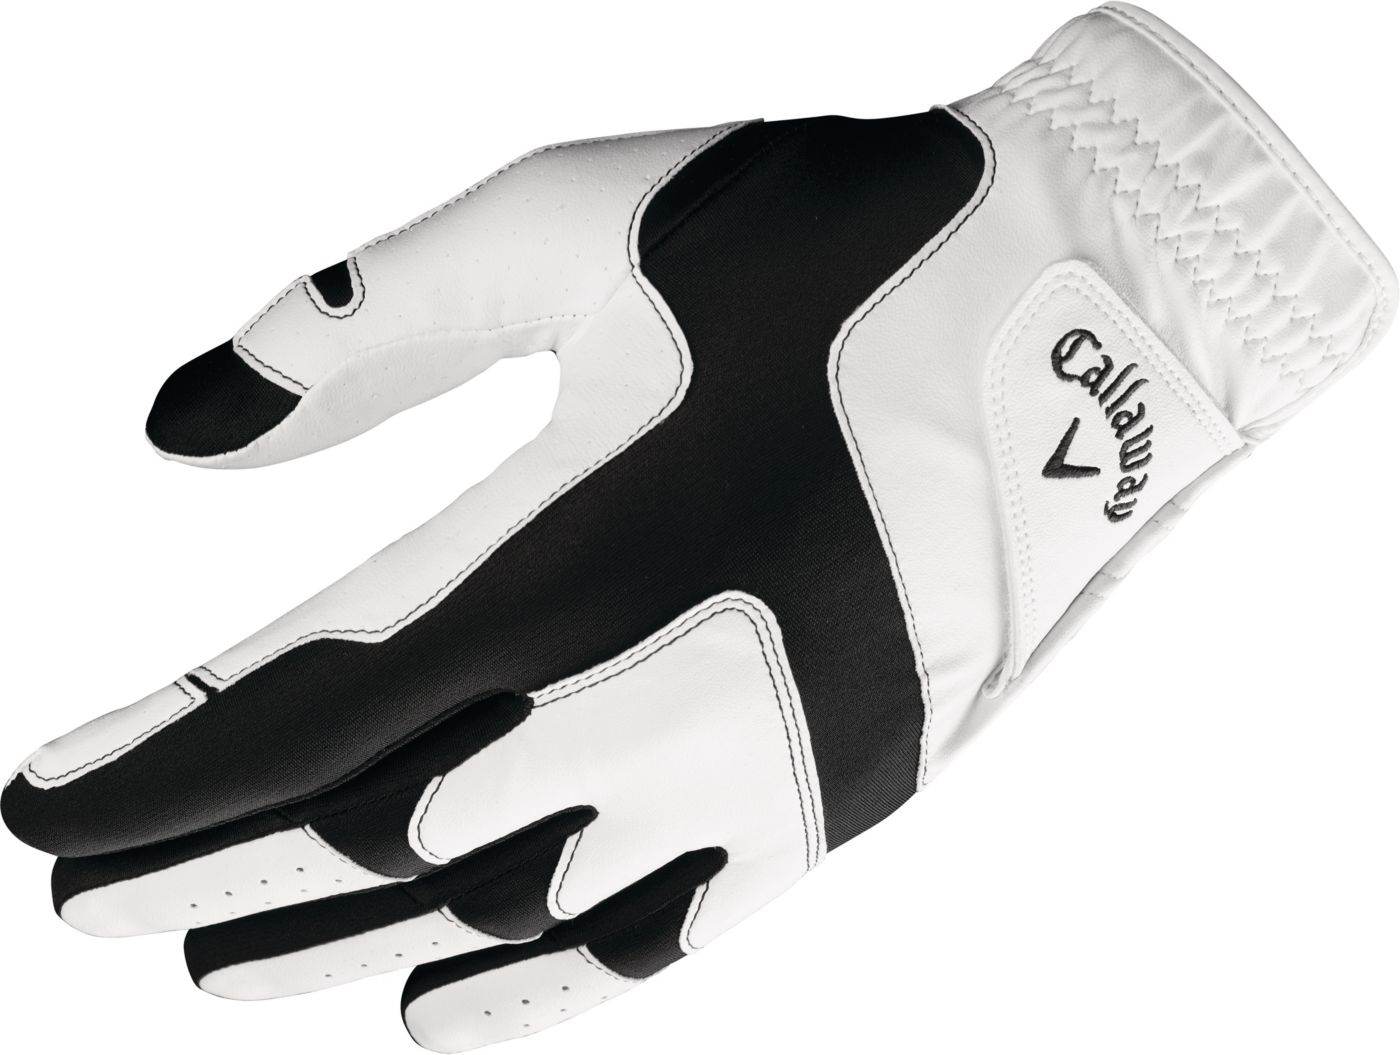 Callaway 2019 Opti-Fit Junior Golf Glove